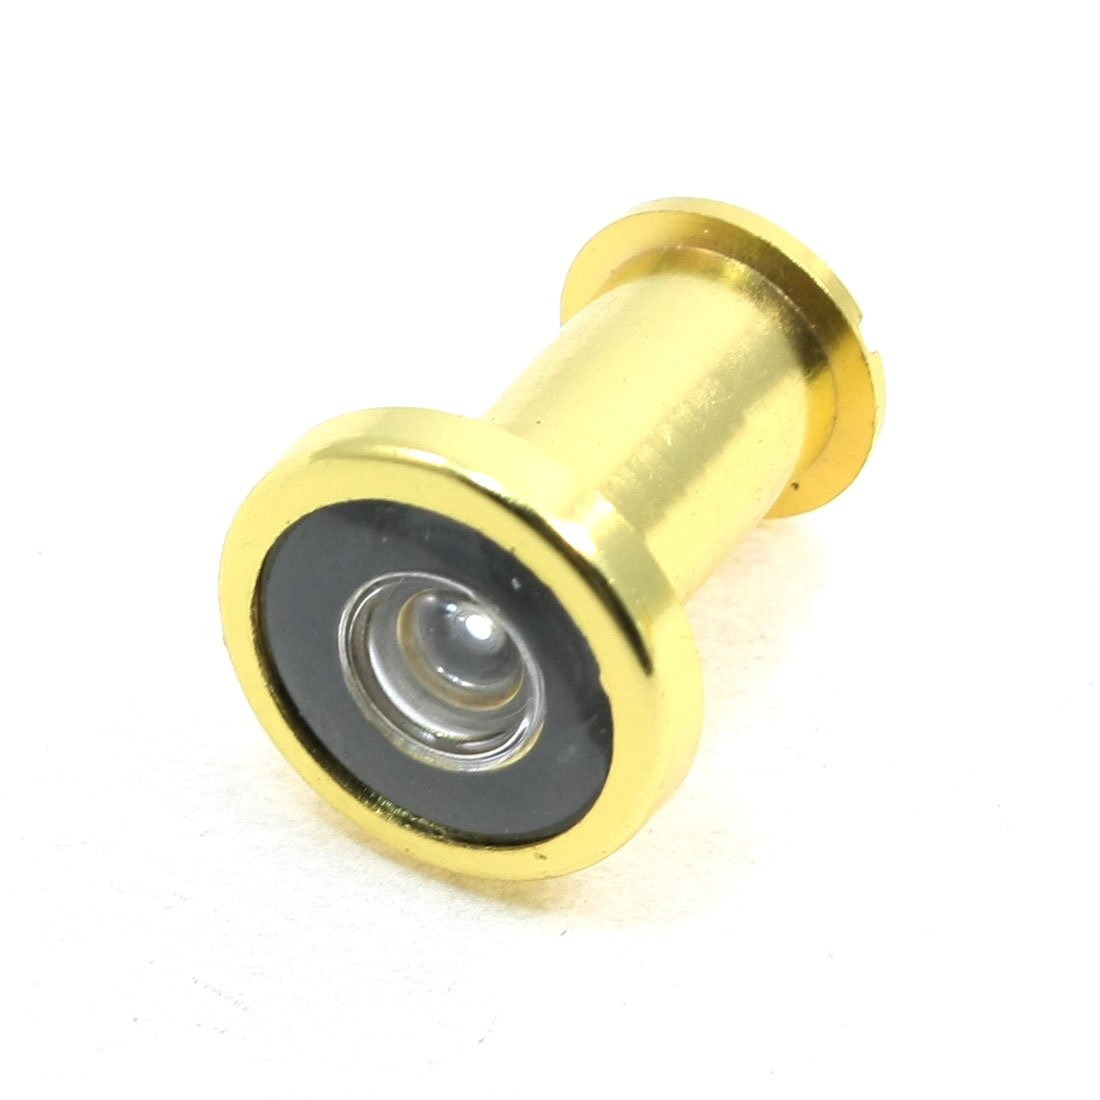 Gold Tone 180 Degree Wide Angle Door Viewer Scope Peep Hole 35-50mm Sourcingmap a13080300ux0106